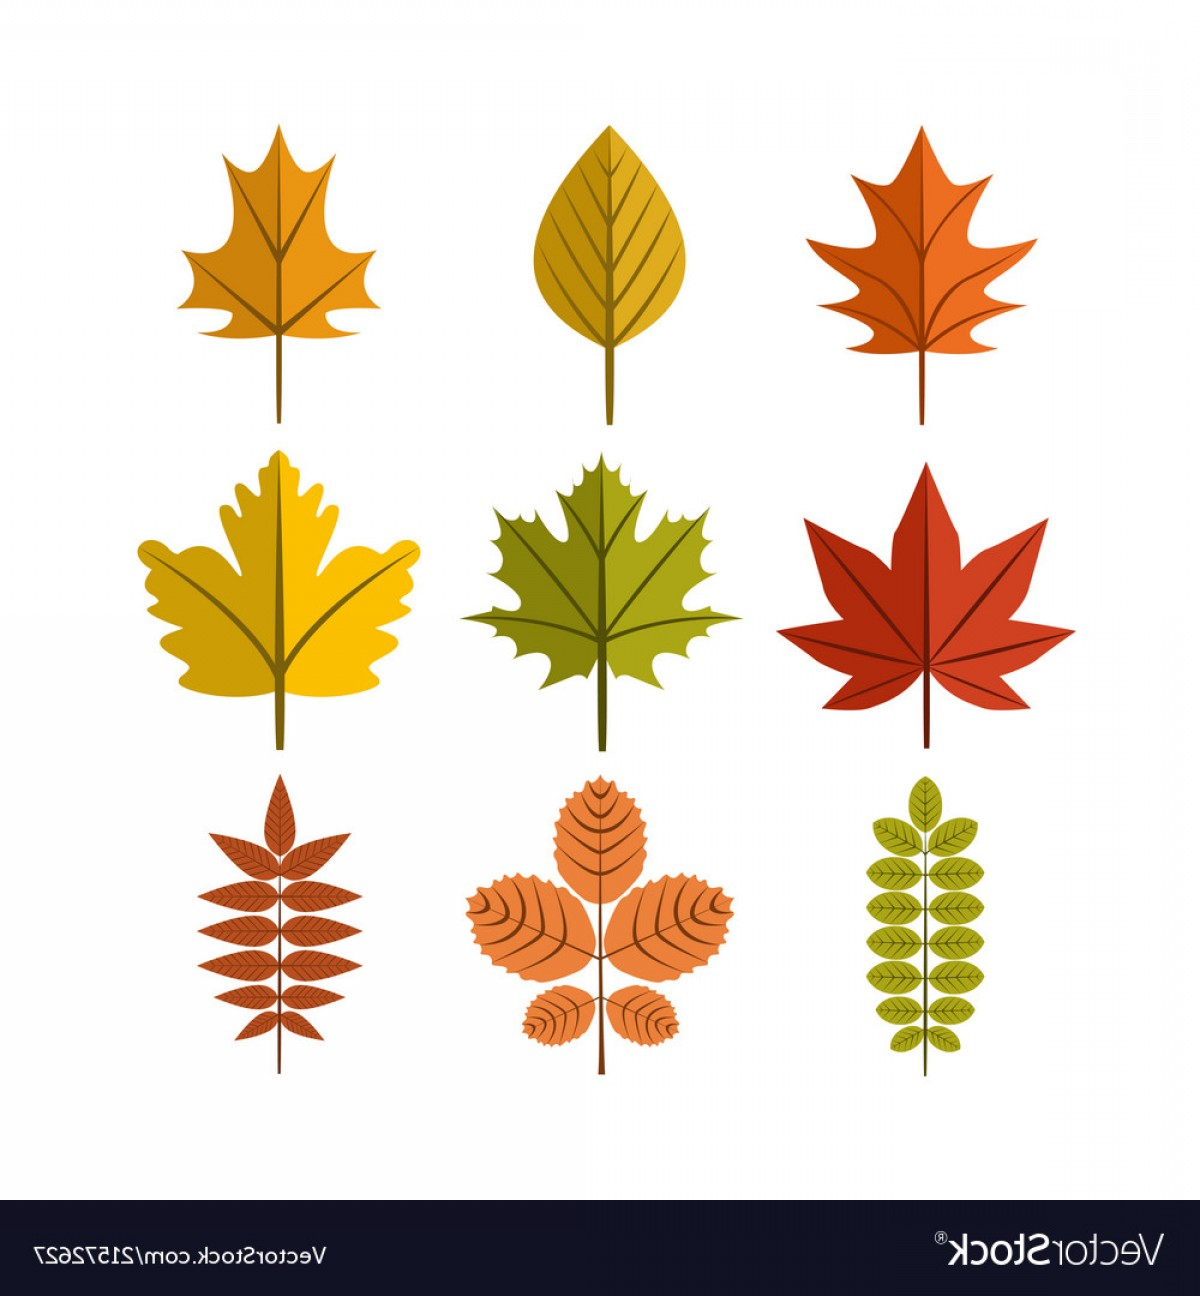 Vector Leaf Graphicd: Simple Autumn Leaf Symbol Graphic Design Template Vector